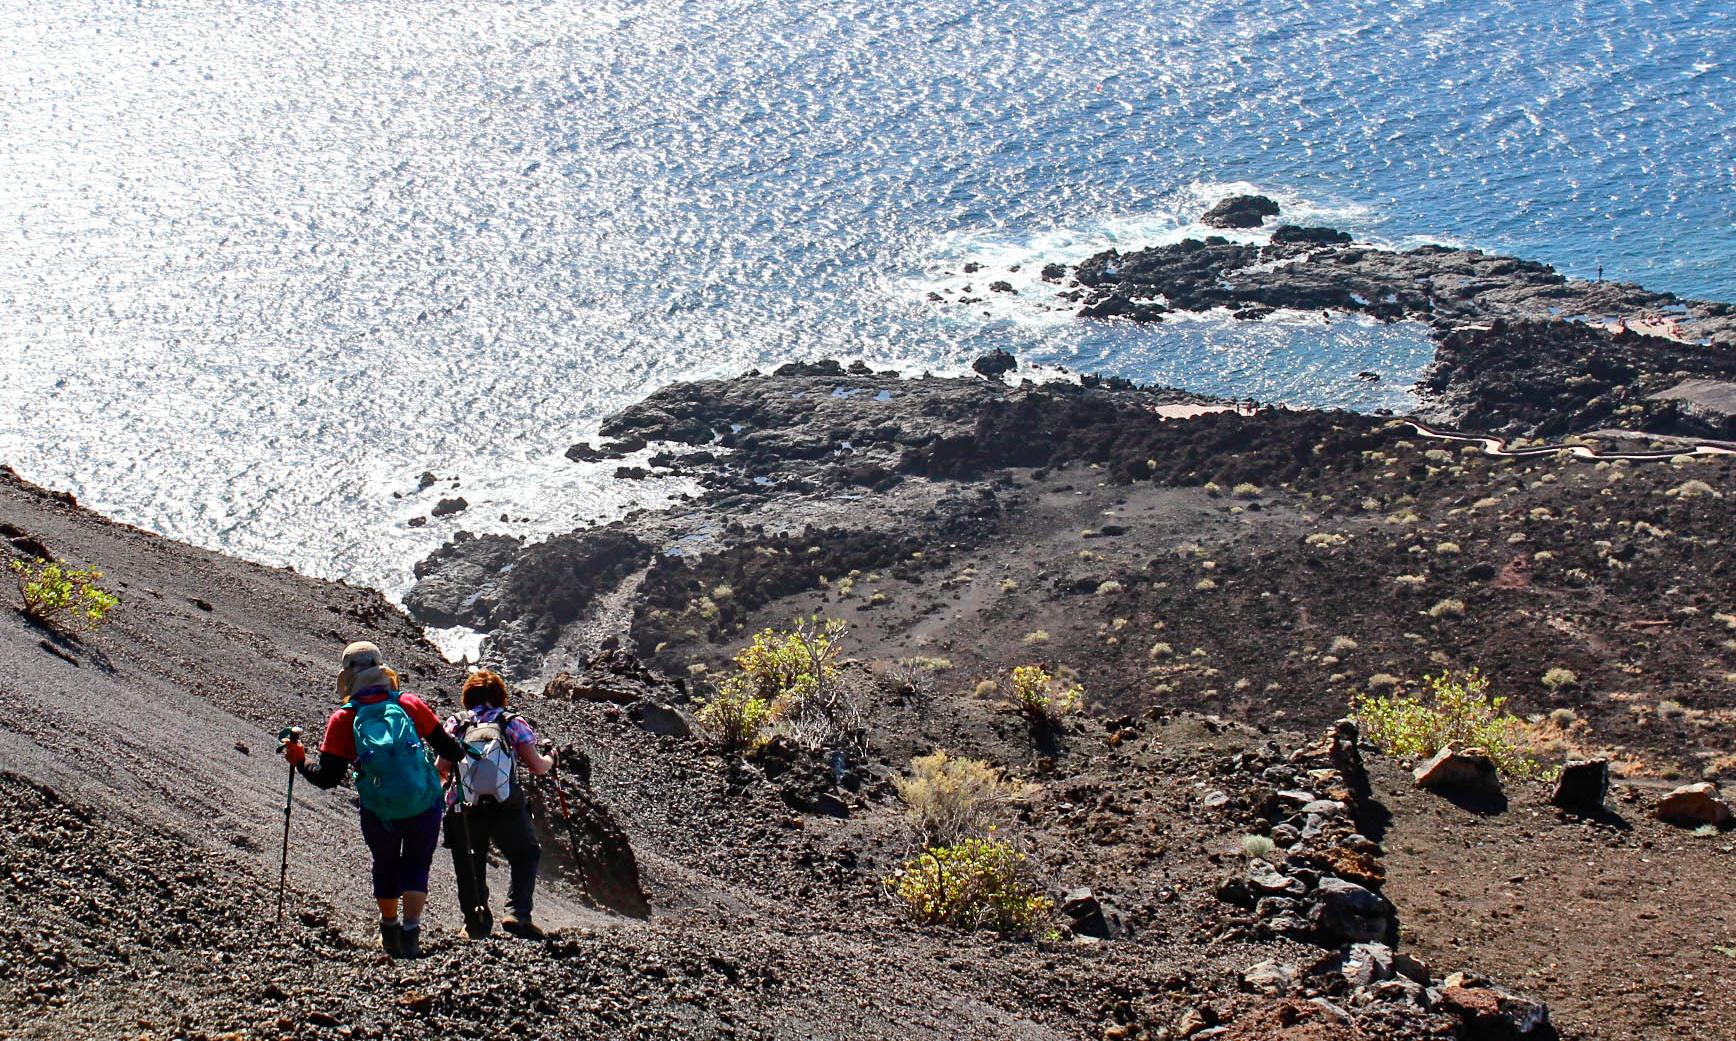 Amid lava fields and lizards: a walking trip on El Hierro, Canaries